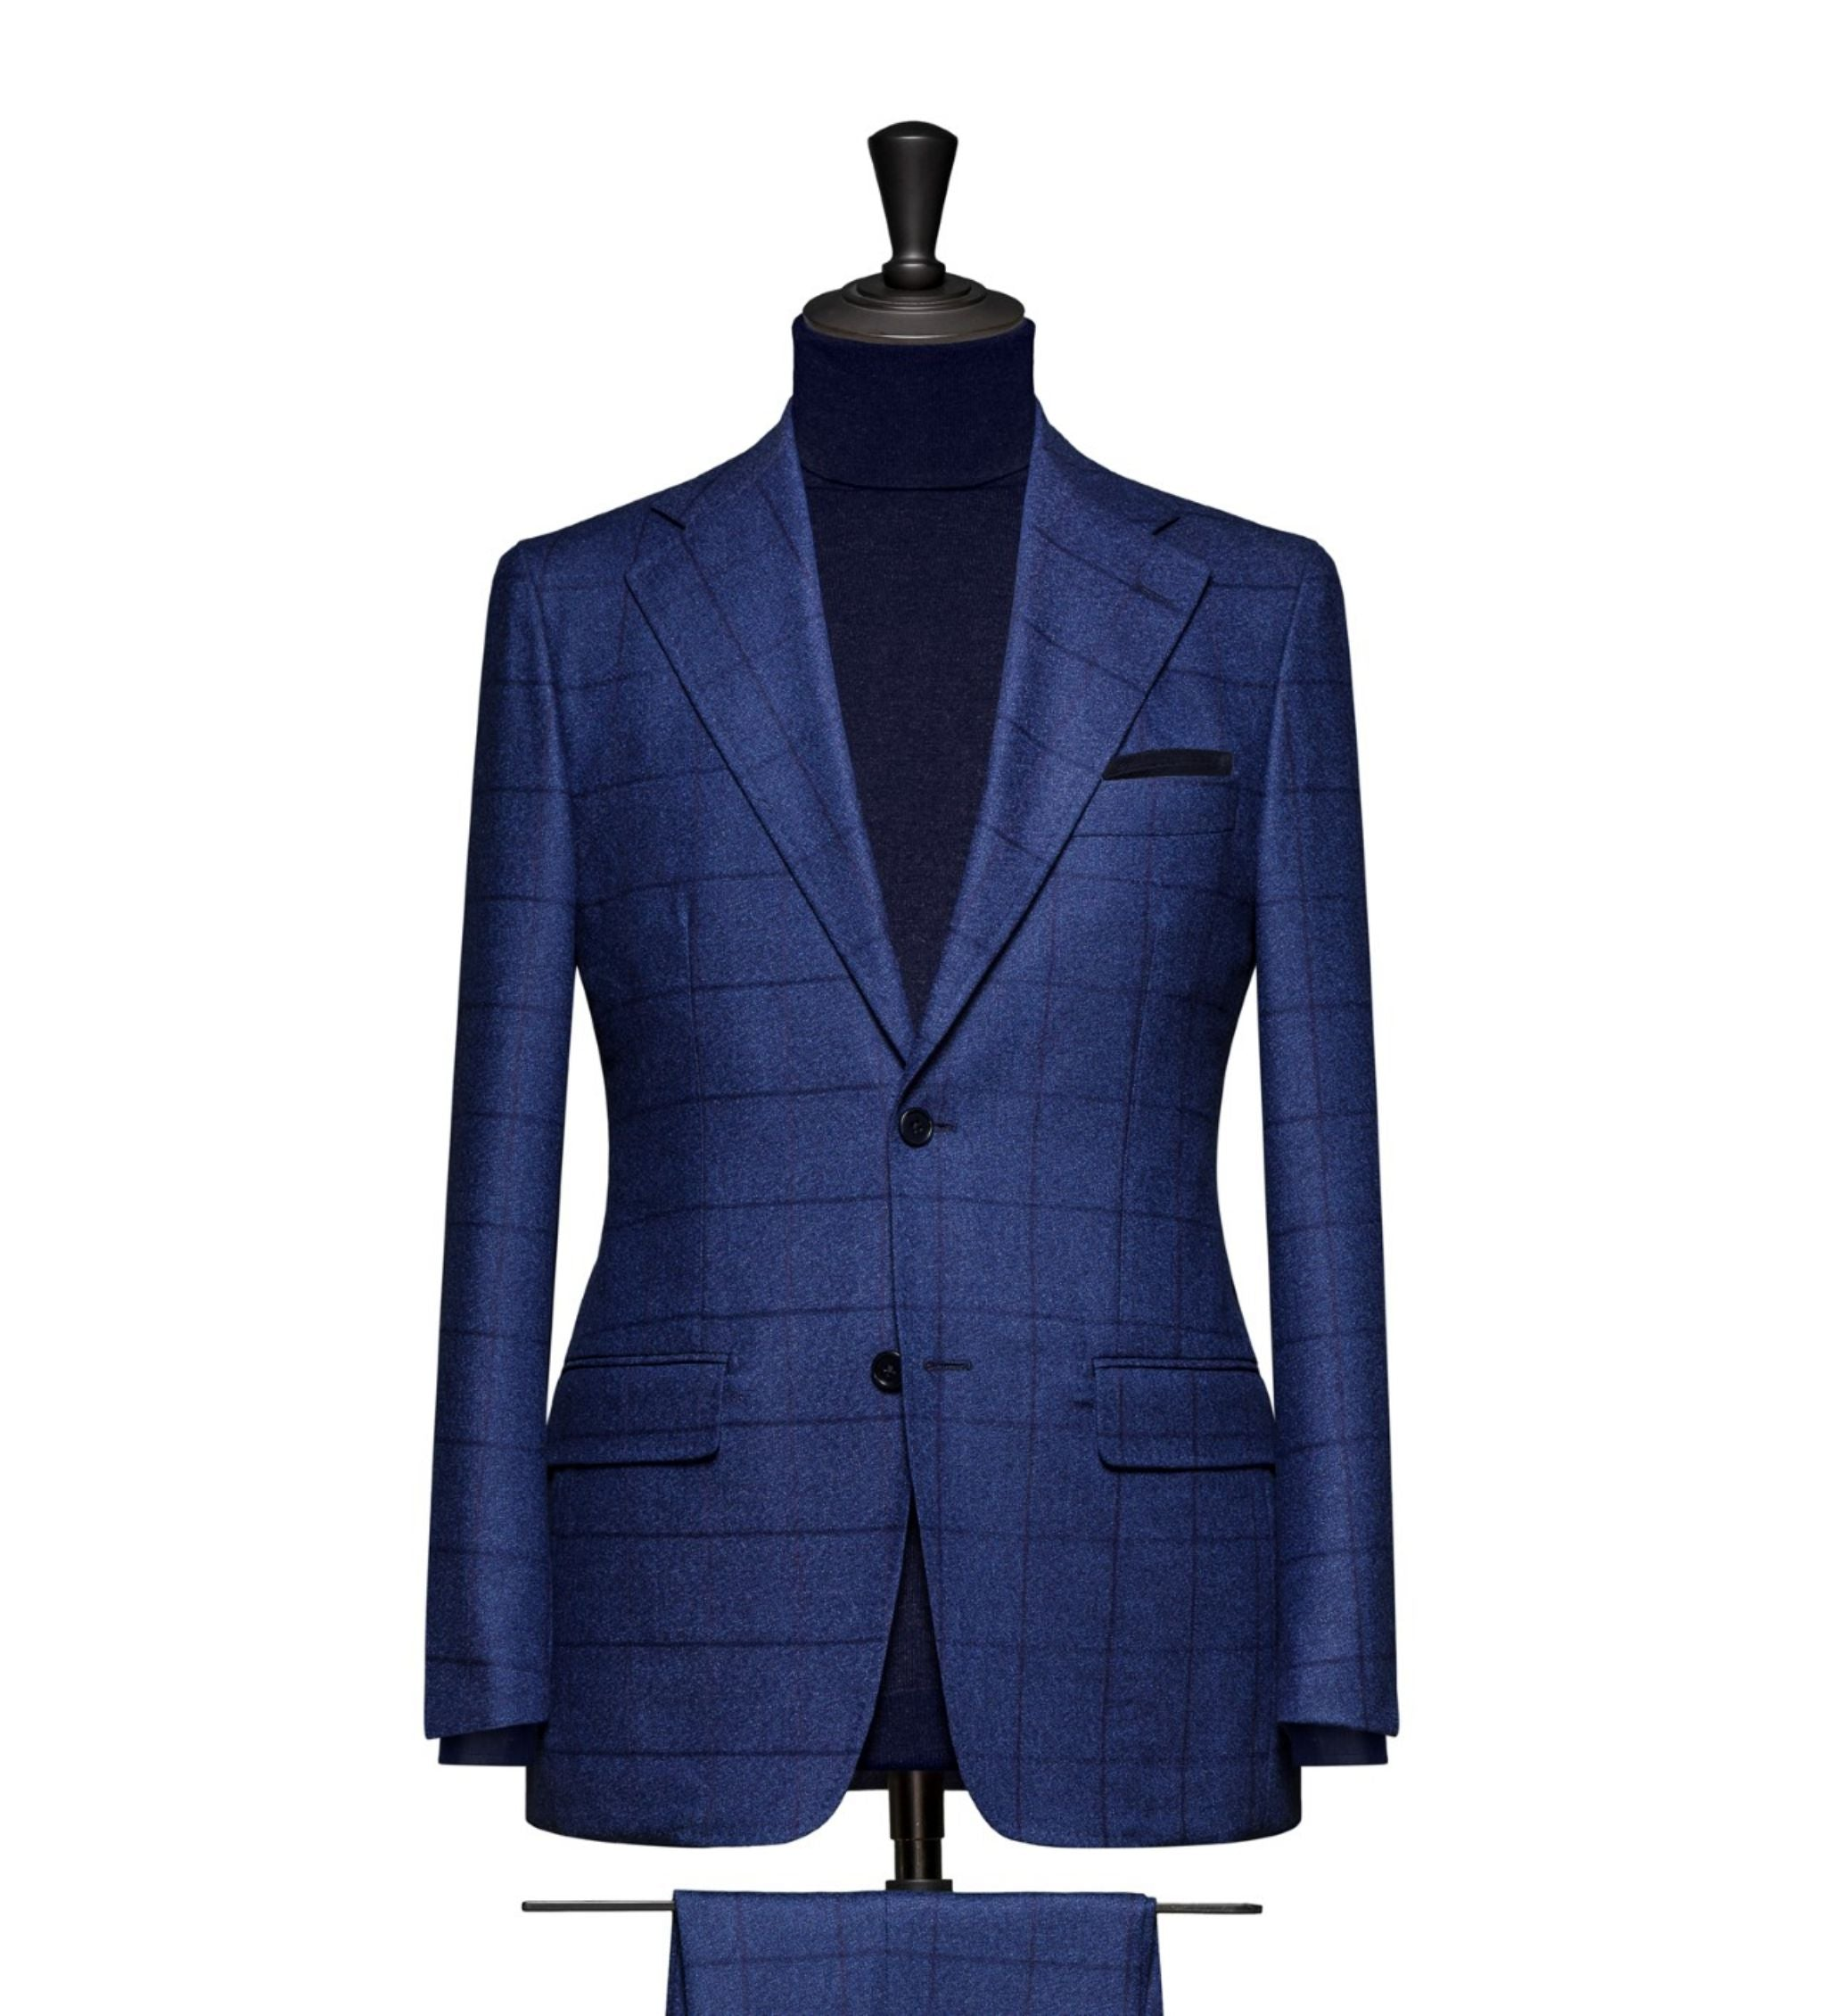 How to combine suits and sport coats - royal blue windowpane suit with roll neck sweater